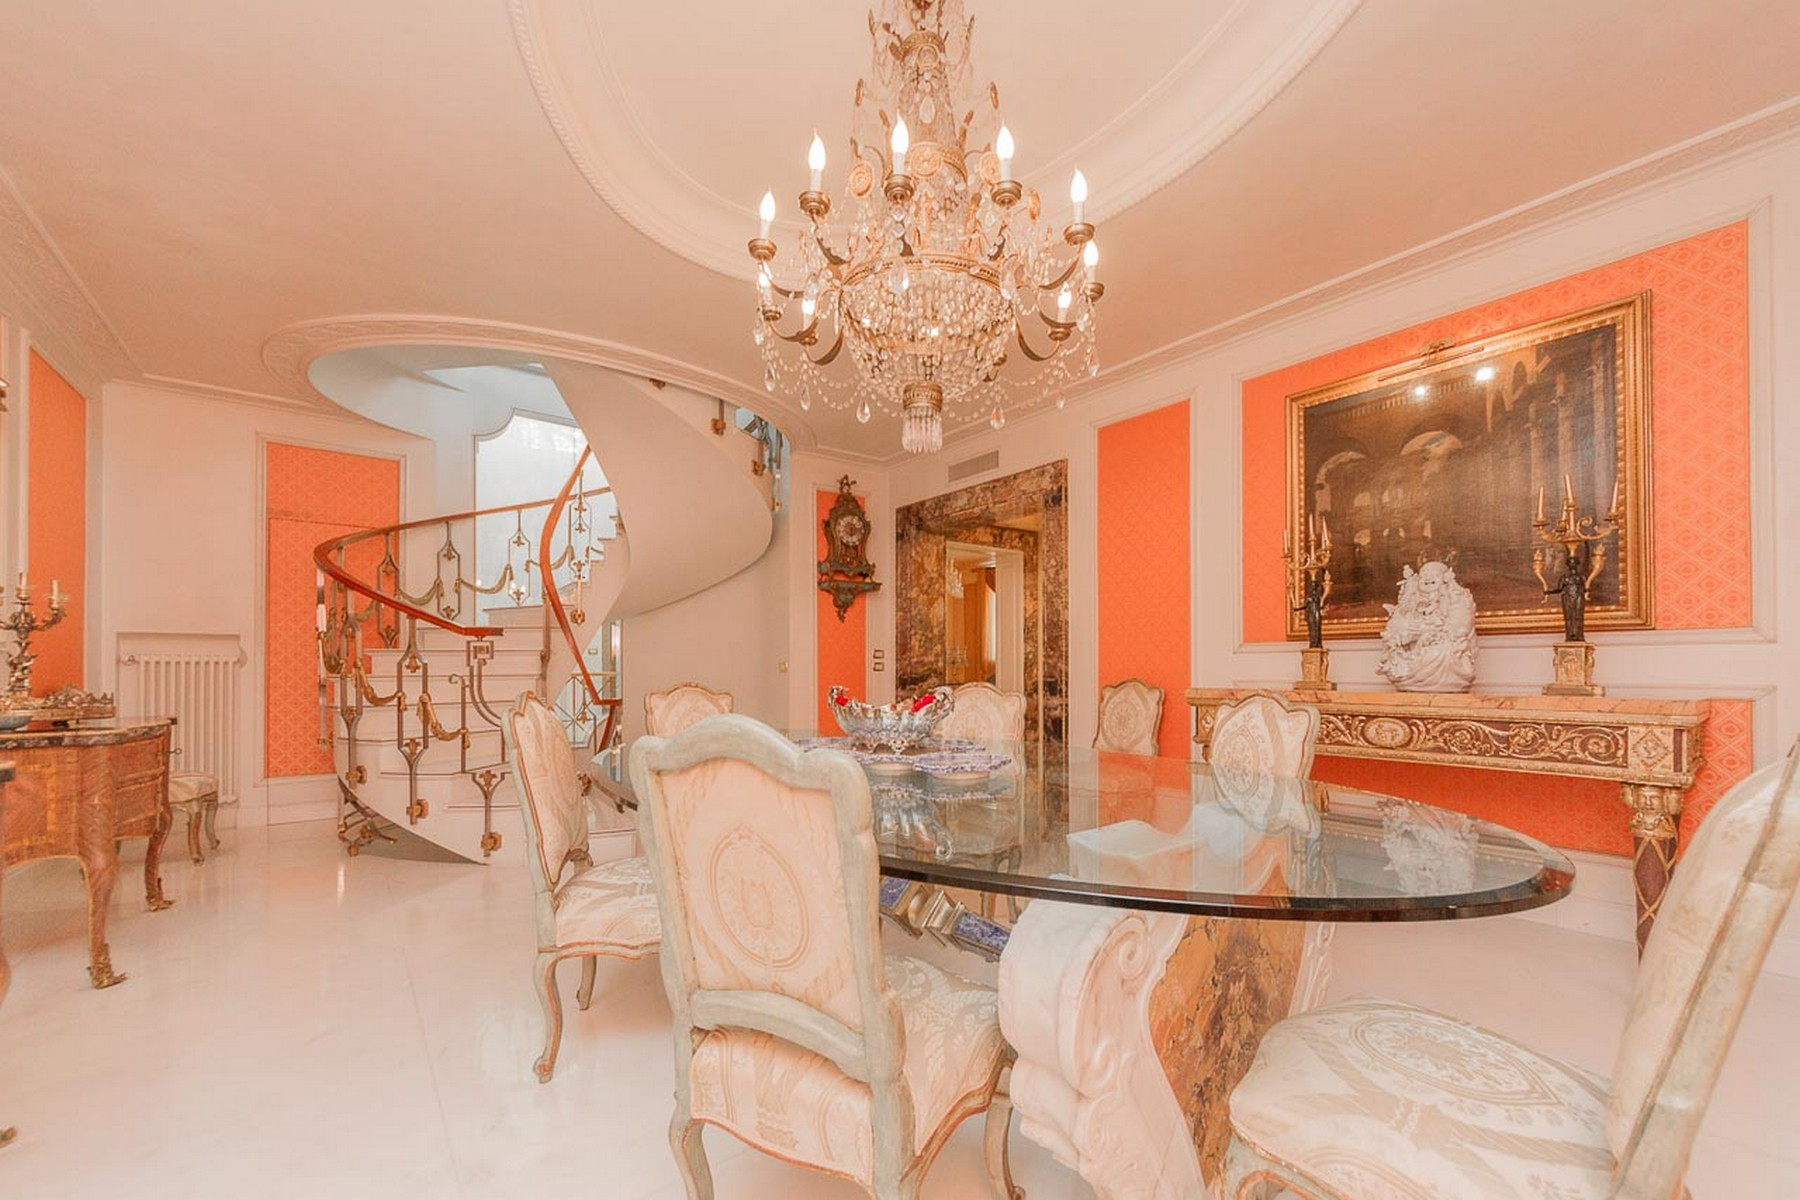 Property for Sale at Luxury residential building in Rome city center Rome, Rome Italy